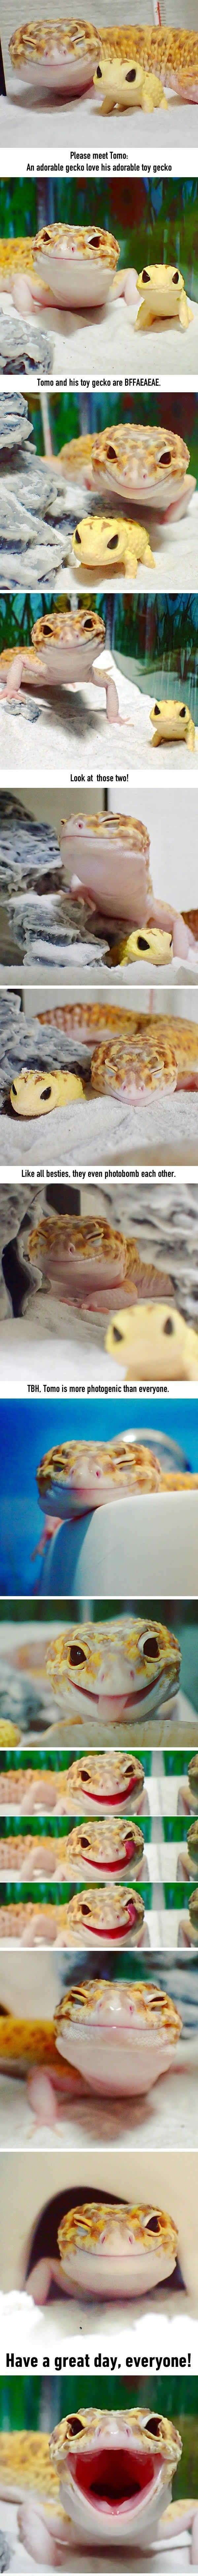 Tomo the happy gecko with his favorite toy gecko